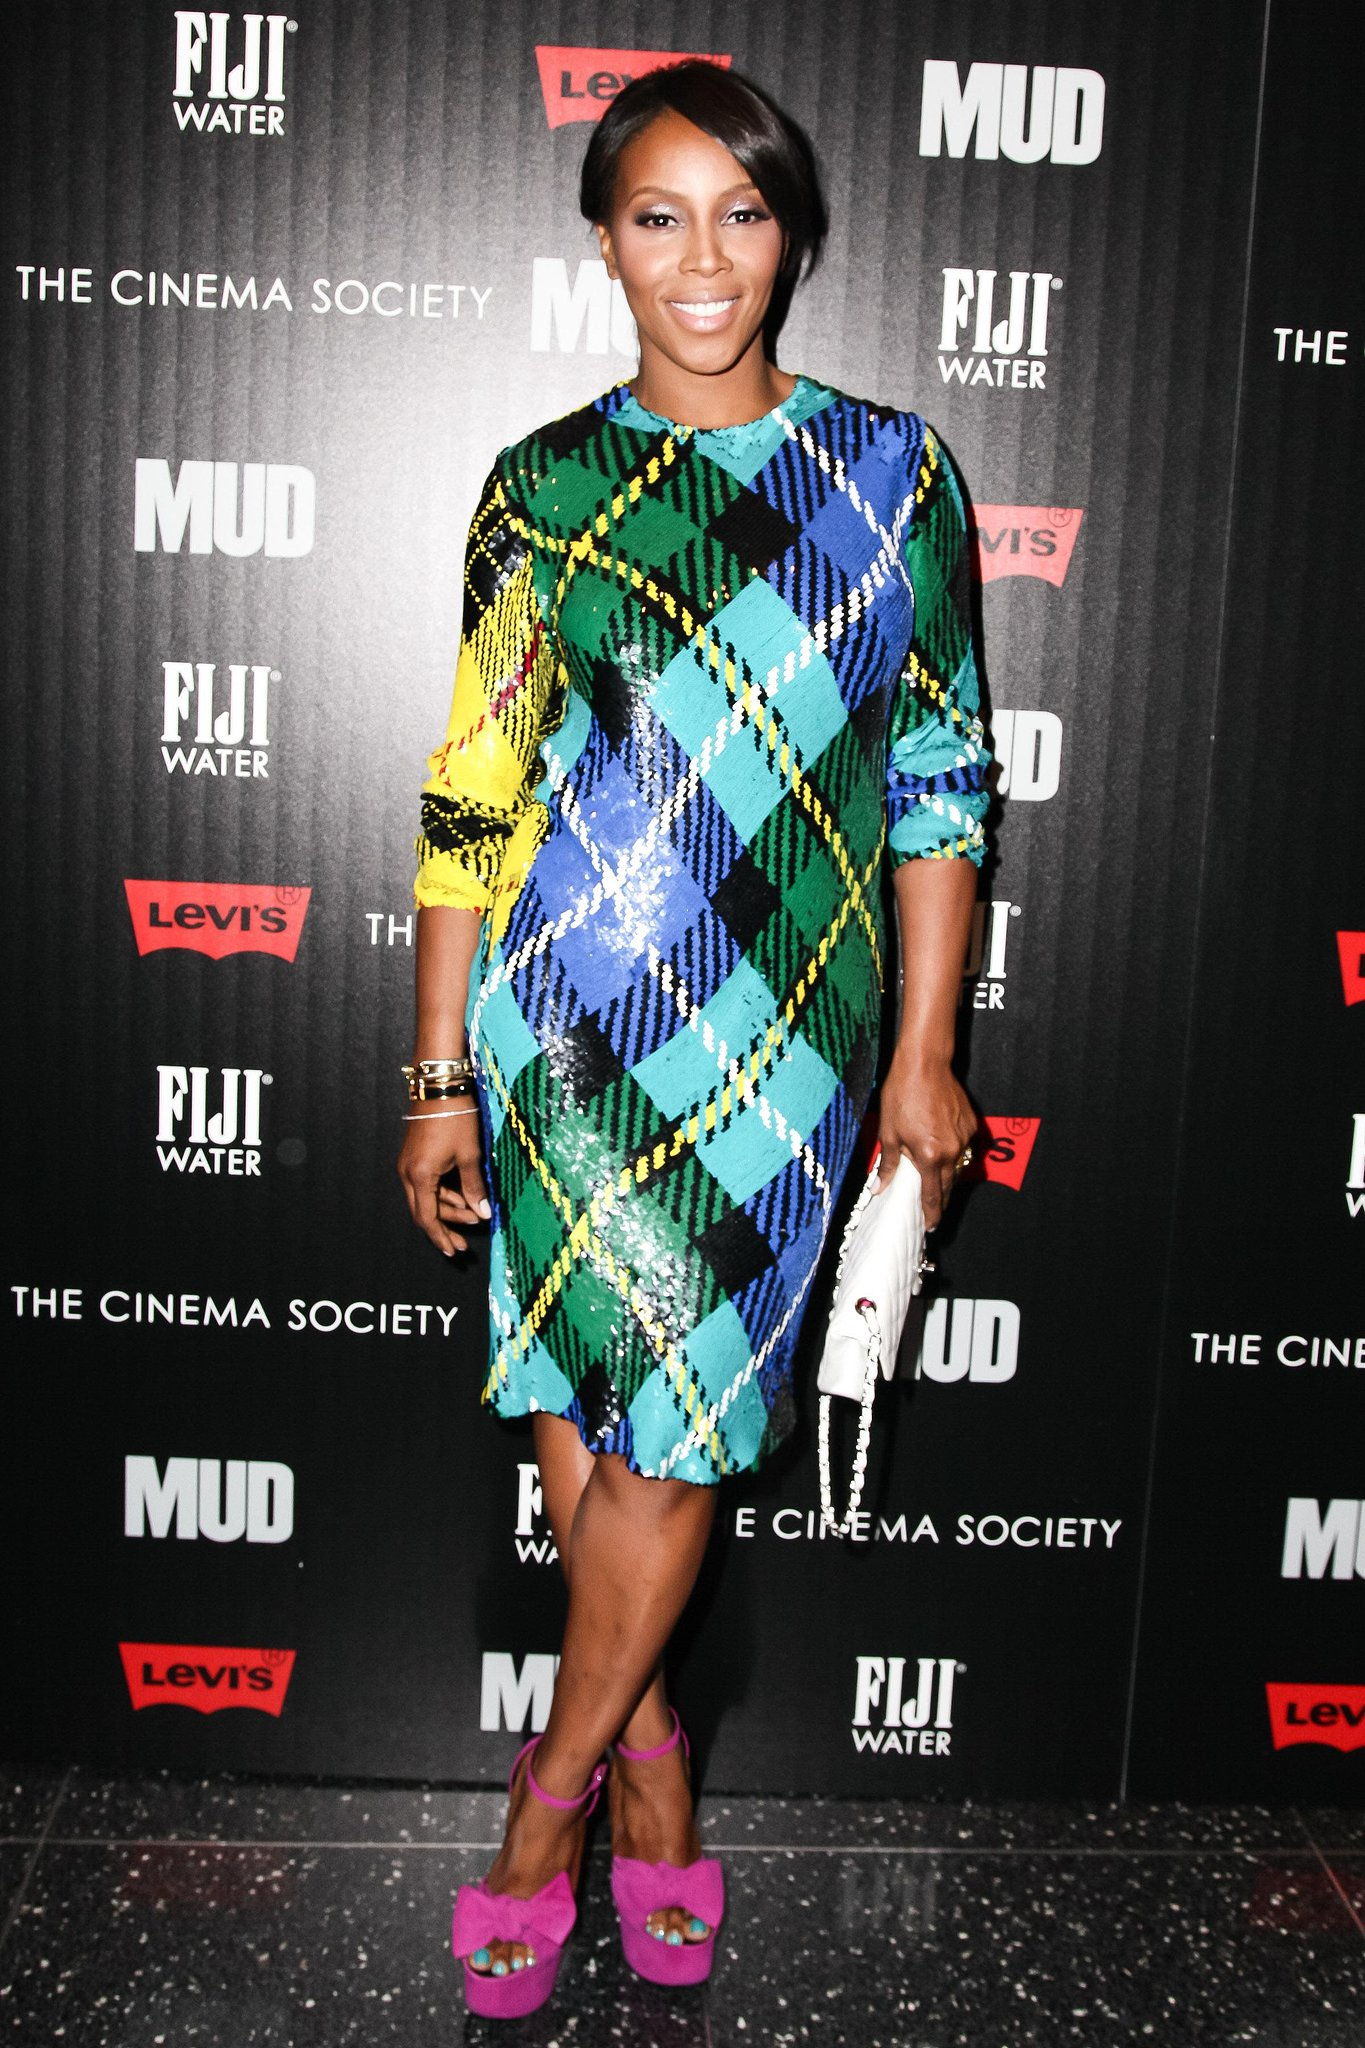 June Ambrose at The Cinema Society's screening of Mud in New York. Source: Matteo Prandoni/BFAnyc.com